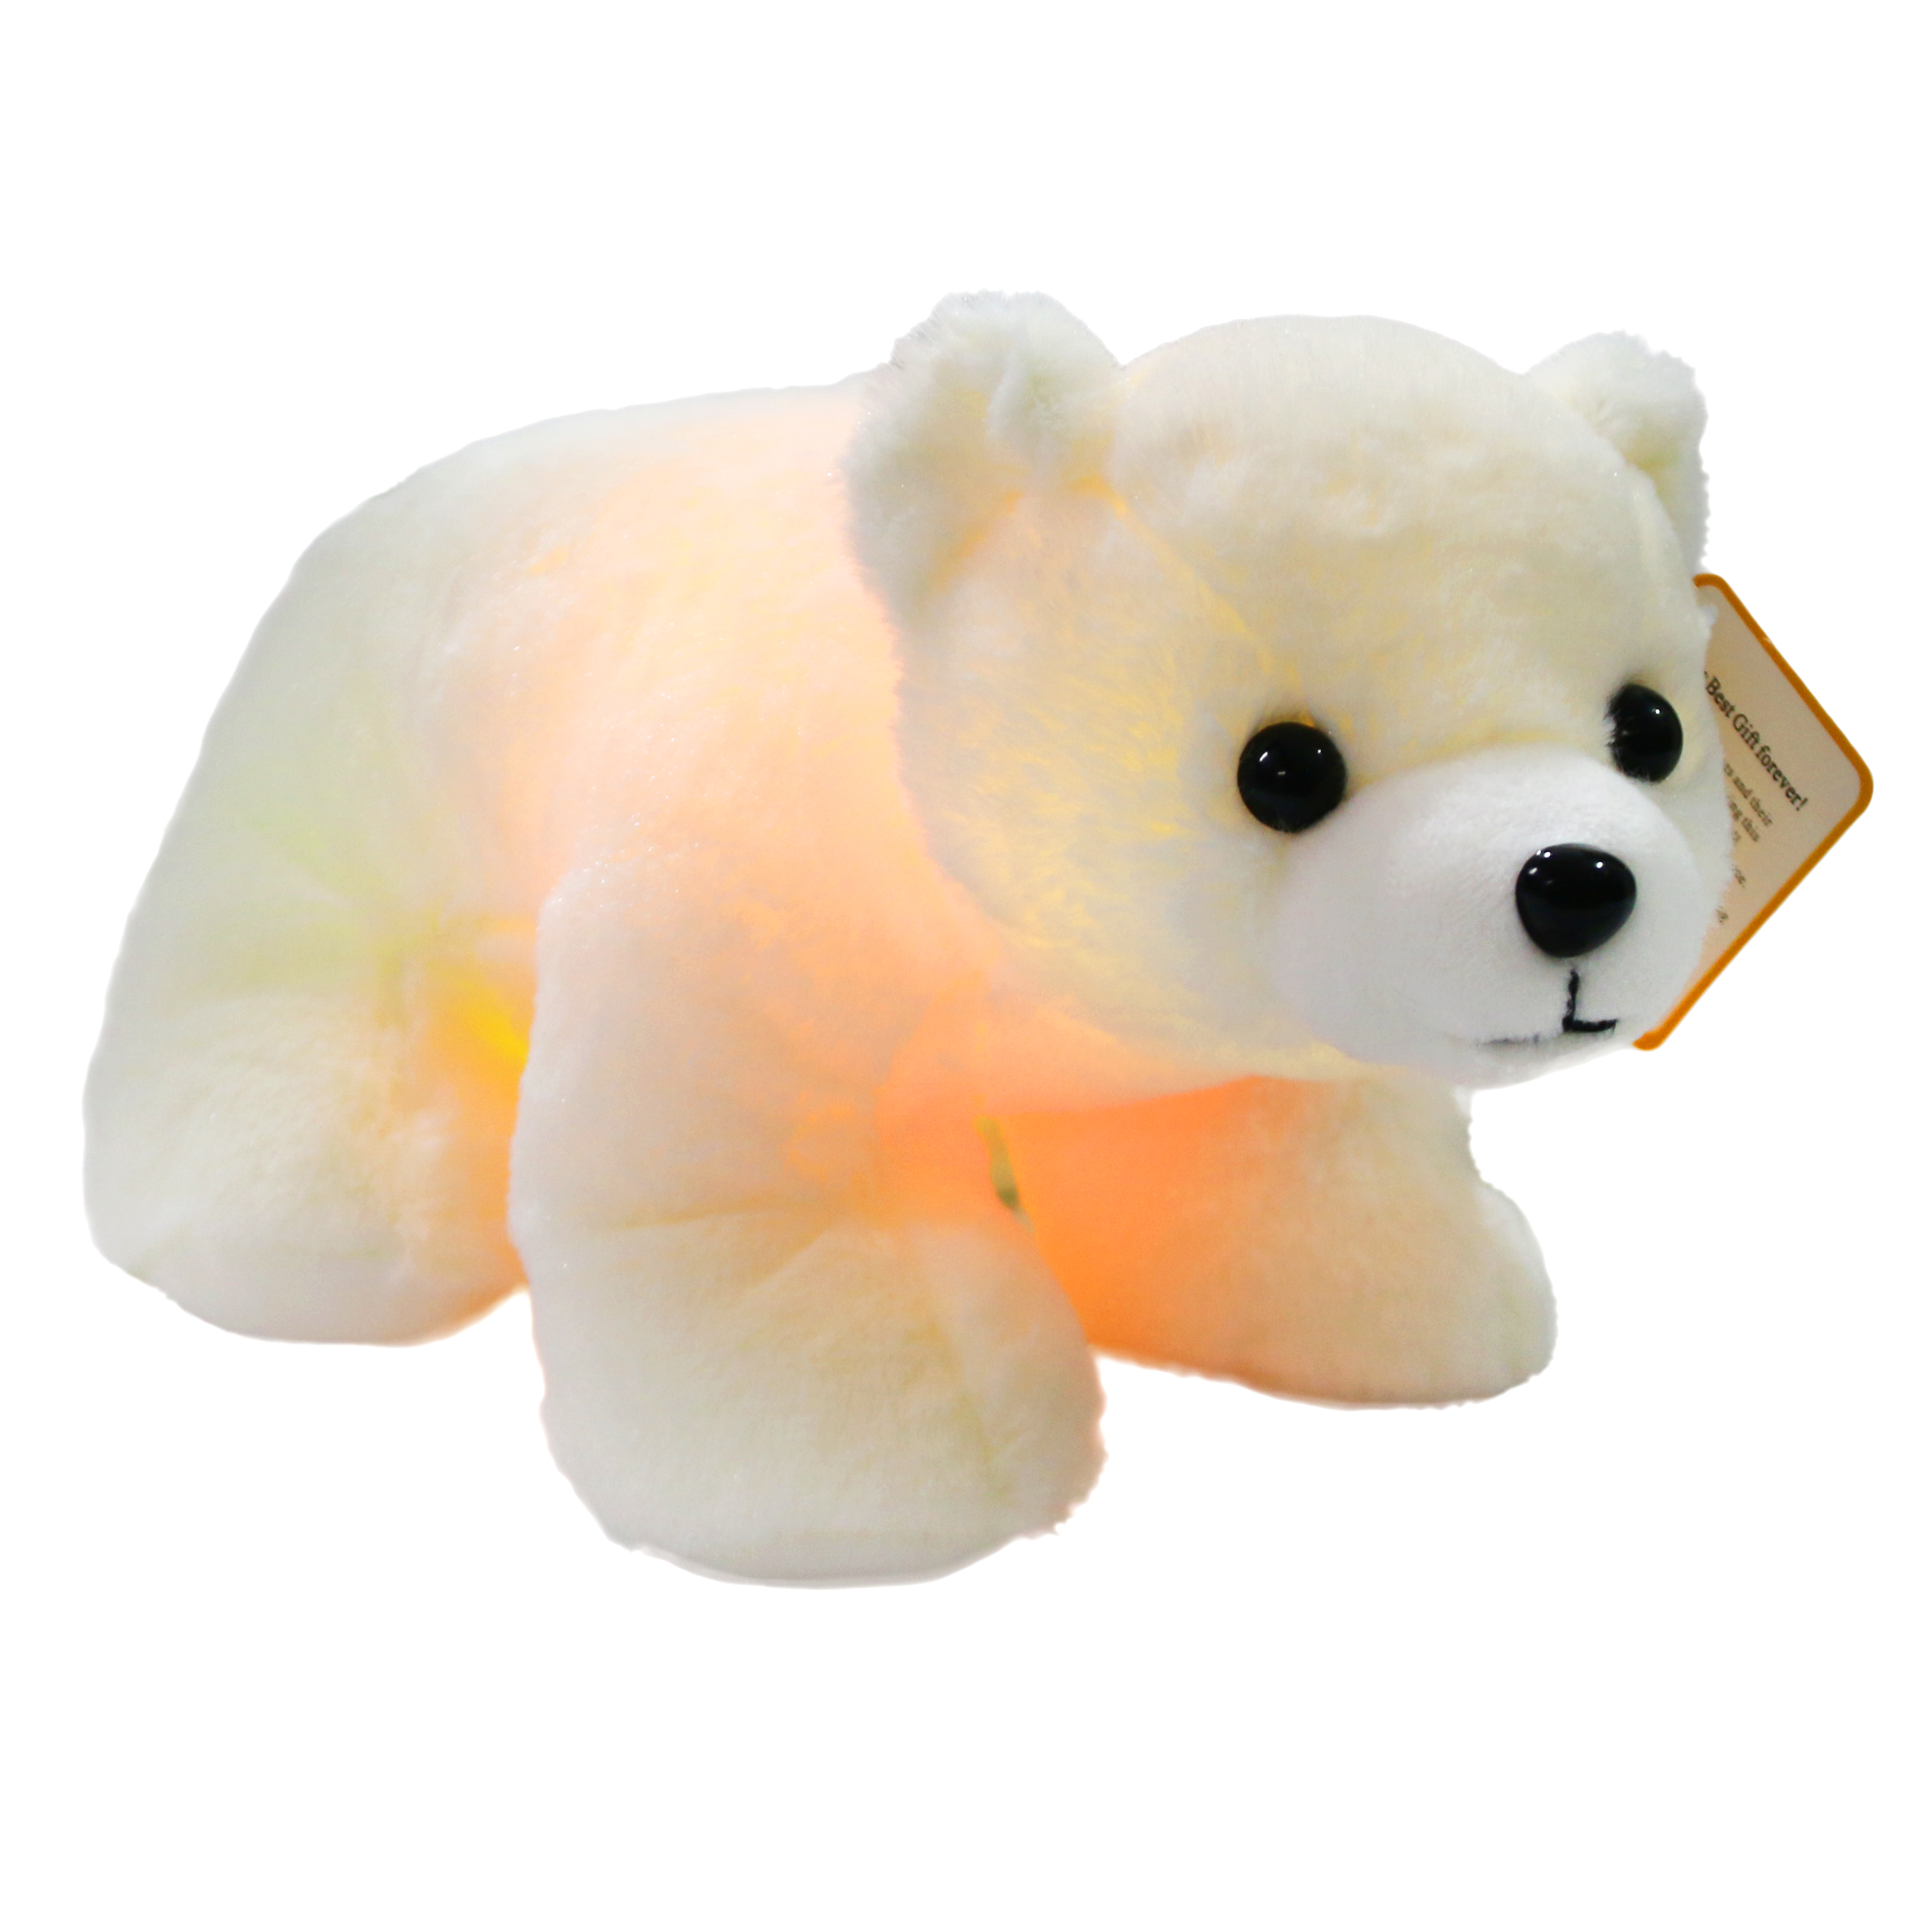 Glow Cute Plush Polar Bear <strong>LED</strong> Stuffed Animals Night Light Up Plush Polar Bear for Gifts